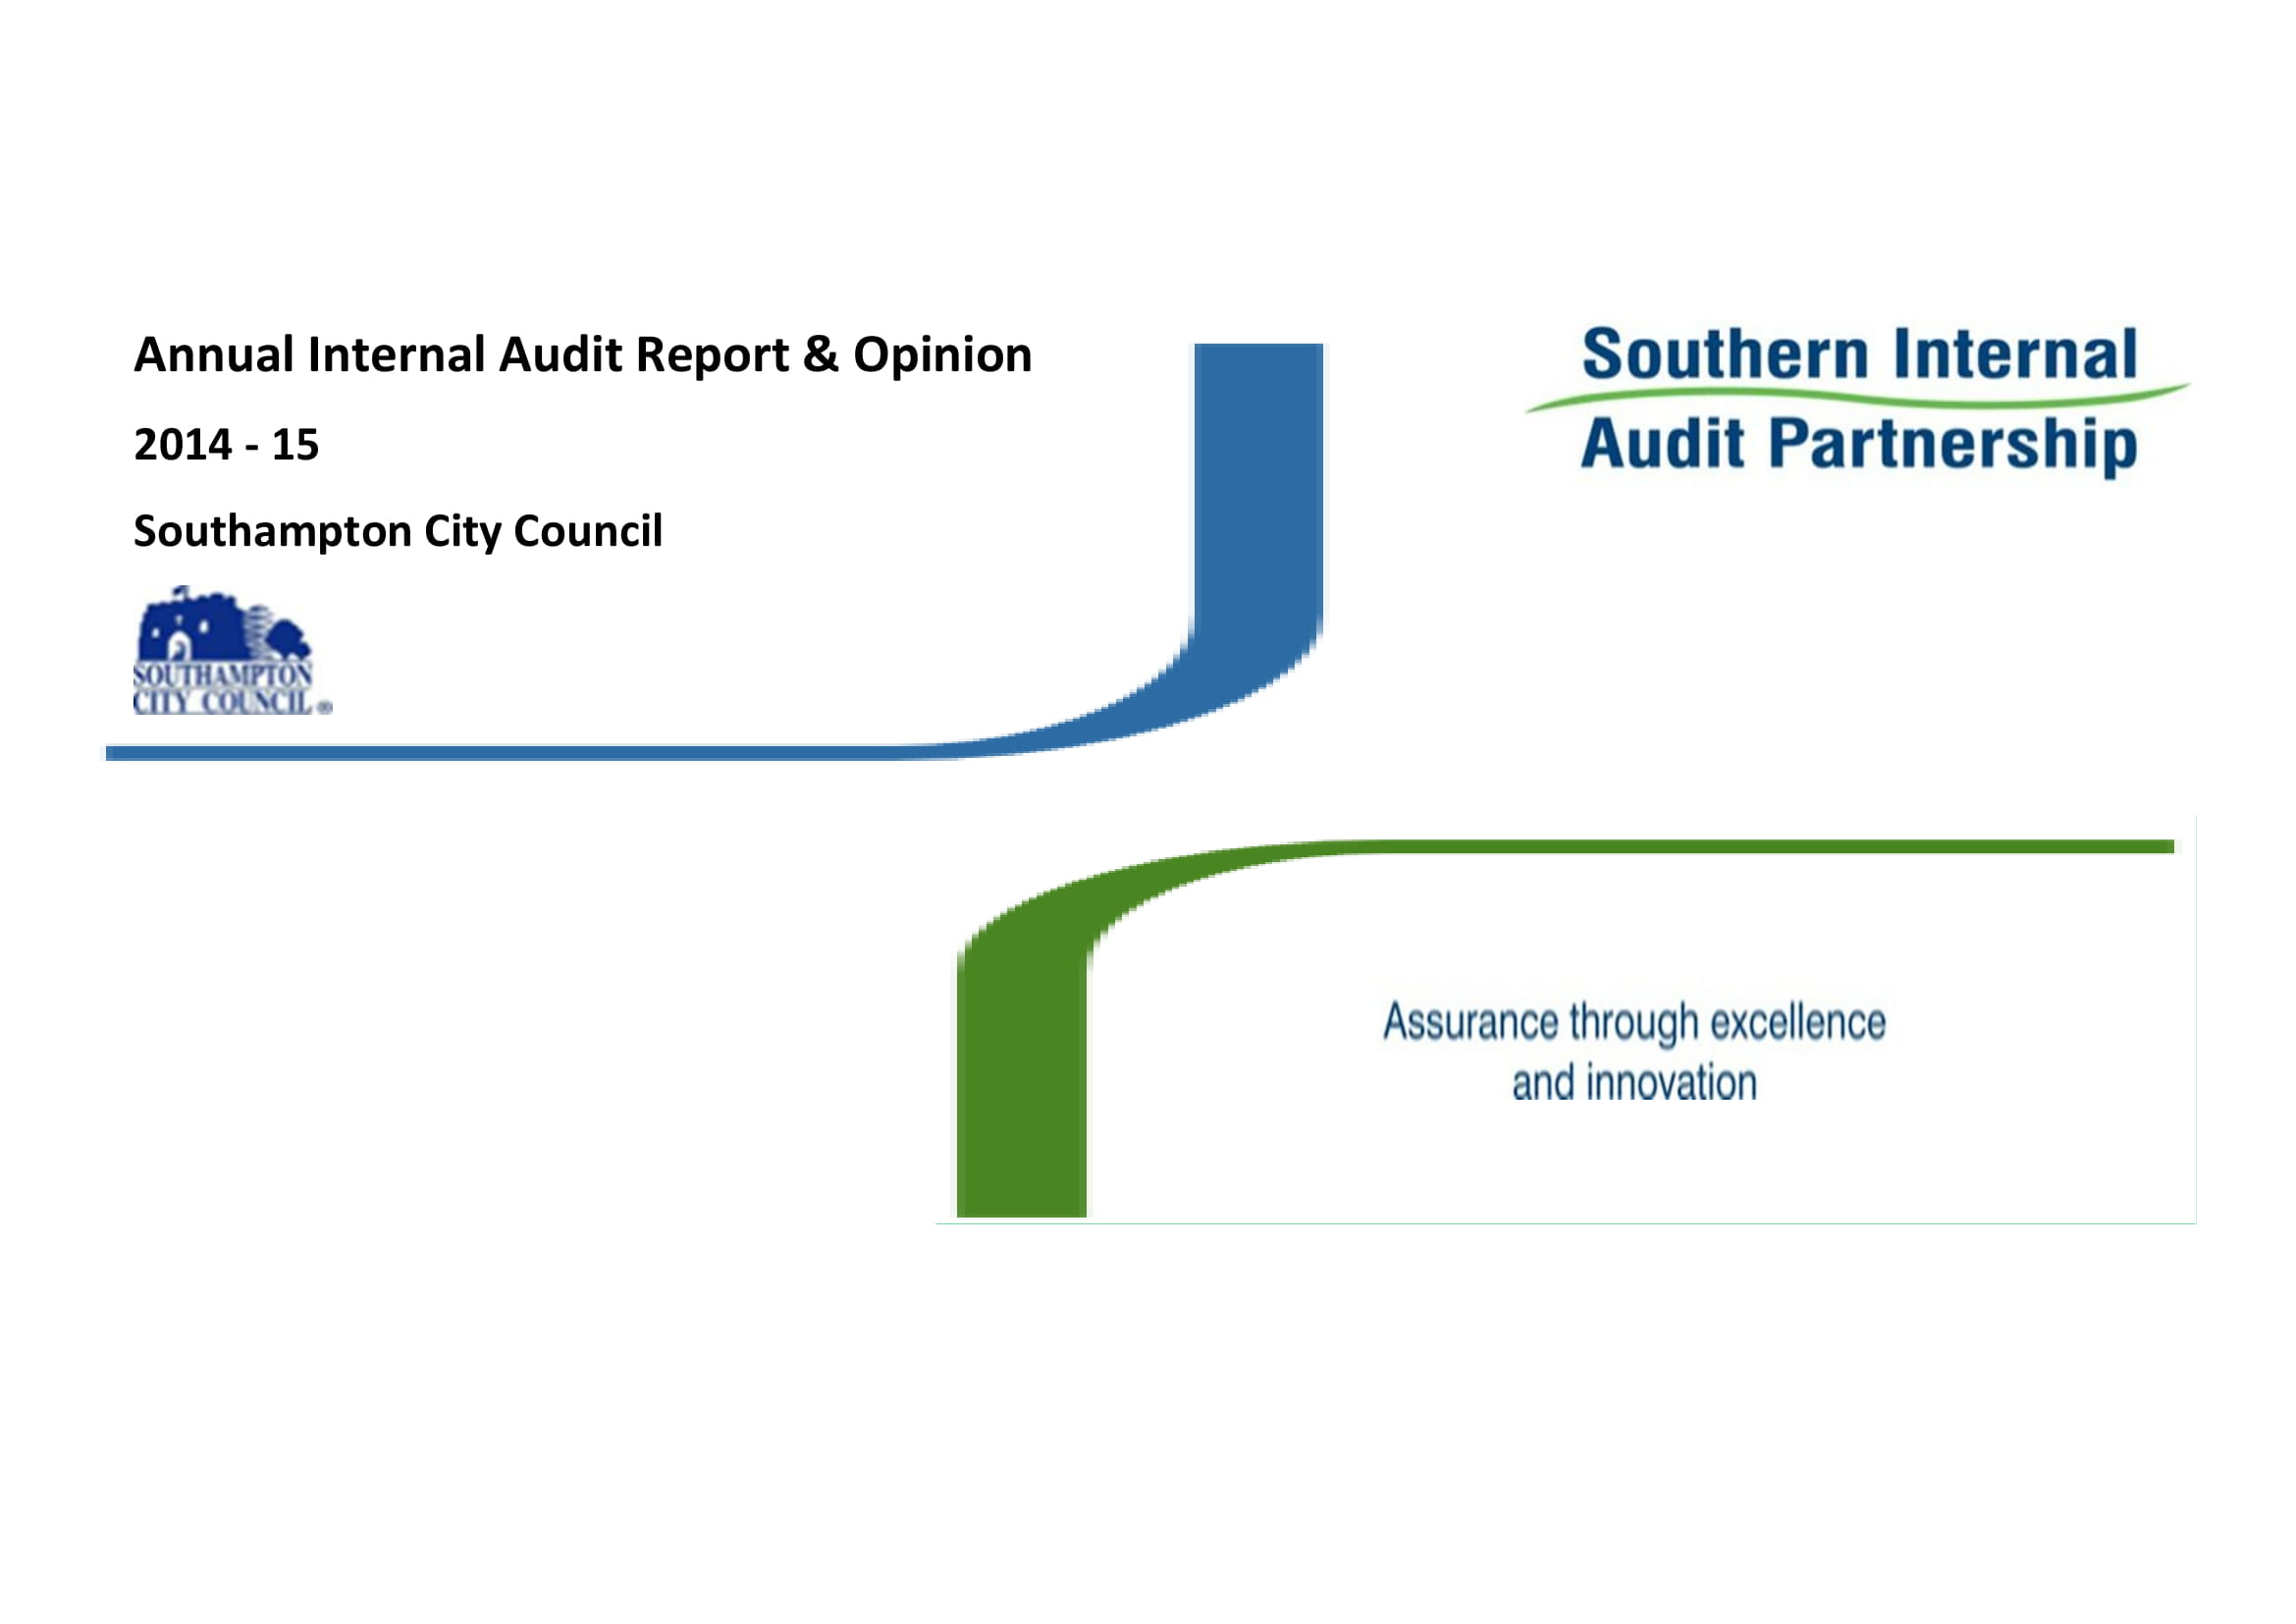 annual internal audit report and opinion example 01